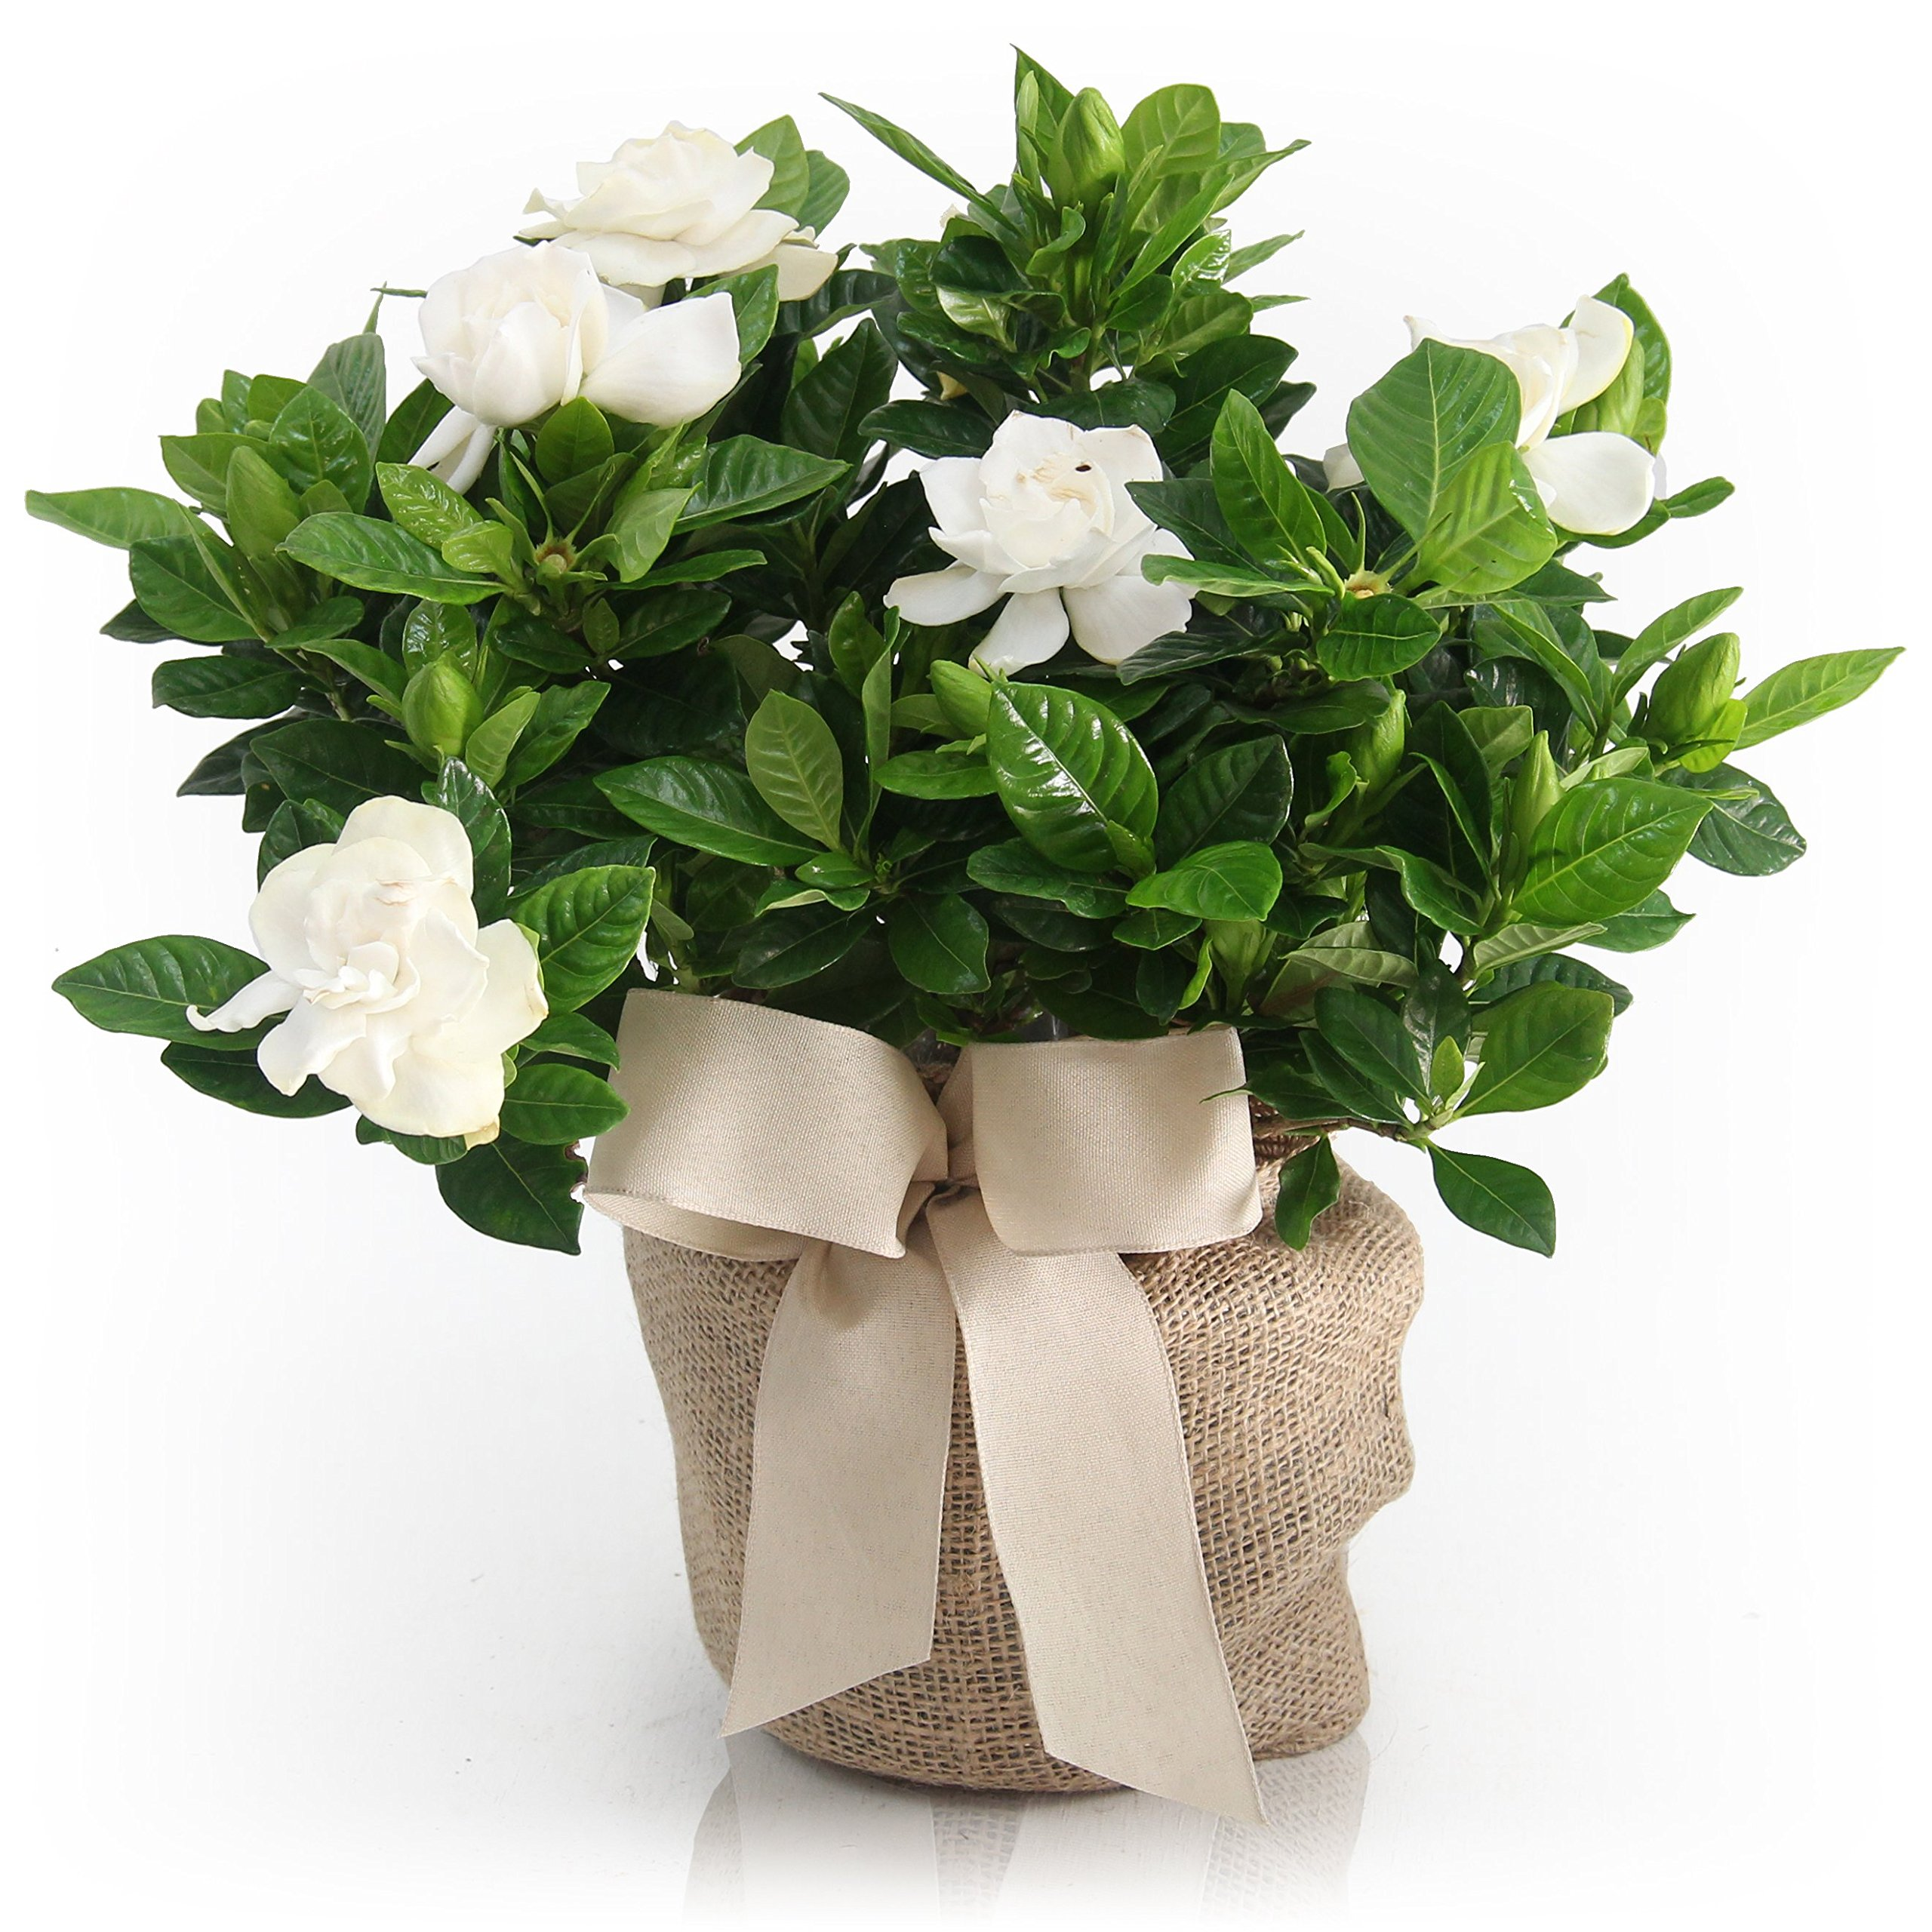 Housewarming Medium Gardenia Gift Tree - Sweet Fragrance with Beautiful Blooms By The Magnolia Company